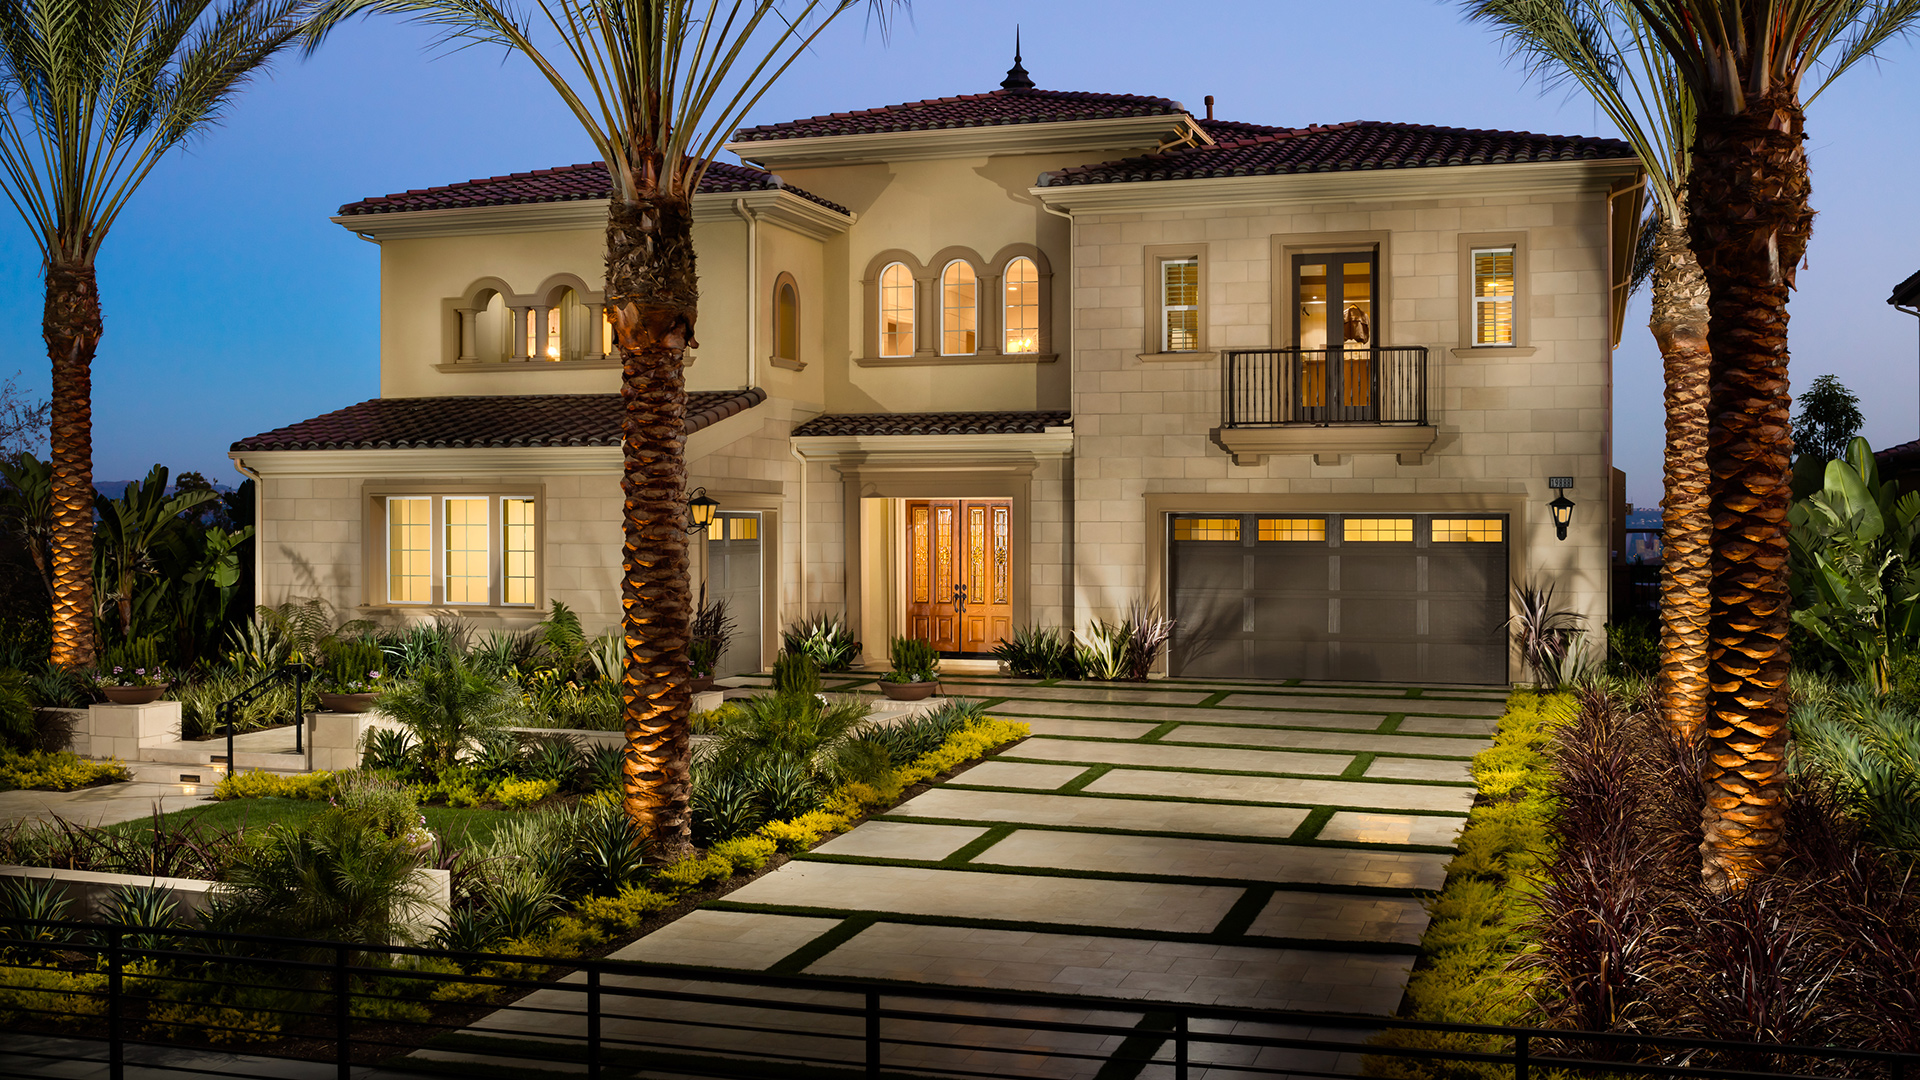 Beautiful architecture boasting Toll Brothers superior designs and quality craftsmanship.